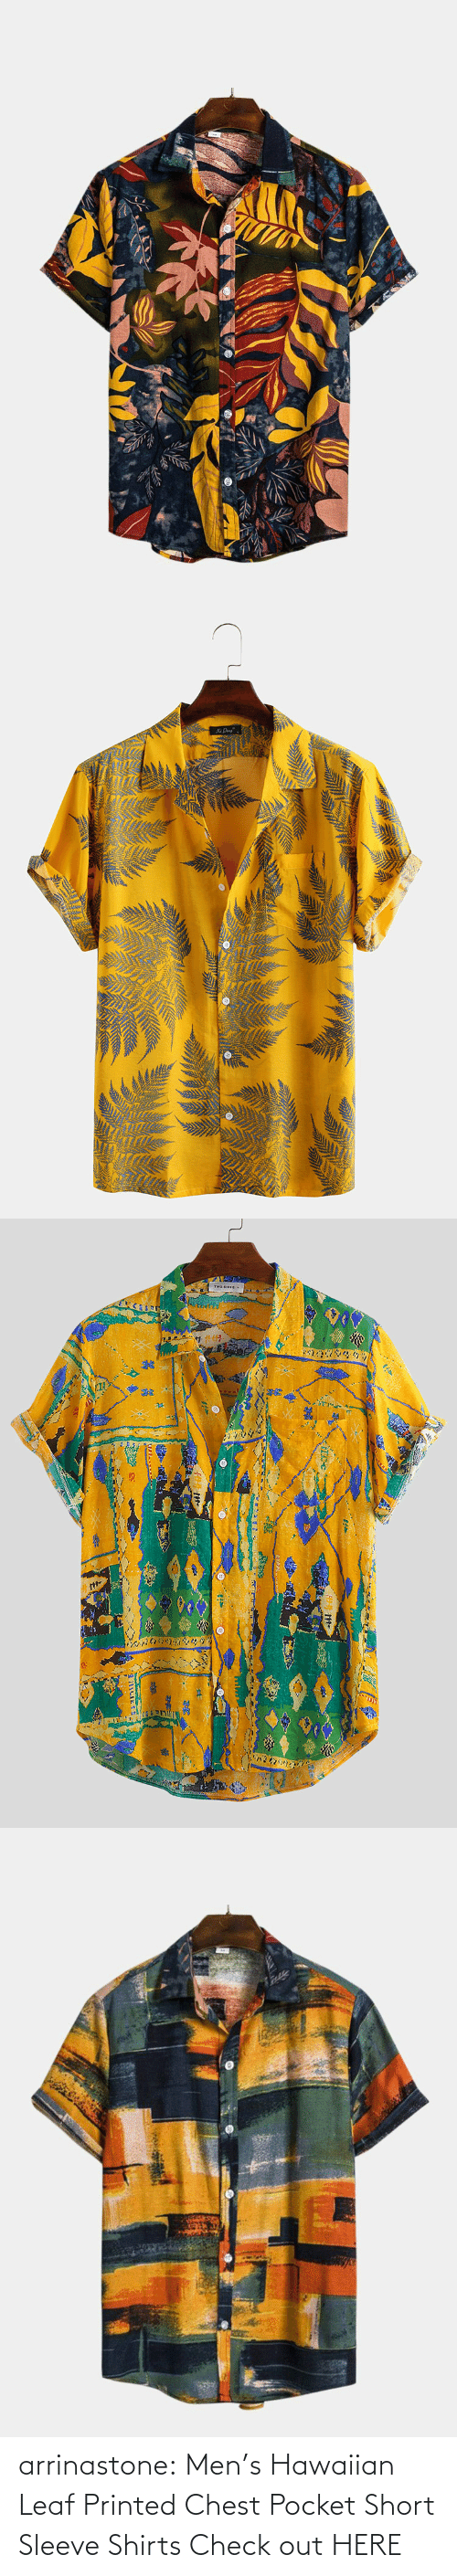 bit.ly: arrinastone: Men's Hawaiian Leaf Printed Chest Pocket Short Sleeve Shirts  Check out HERE